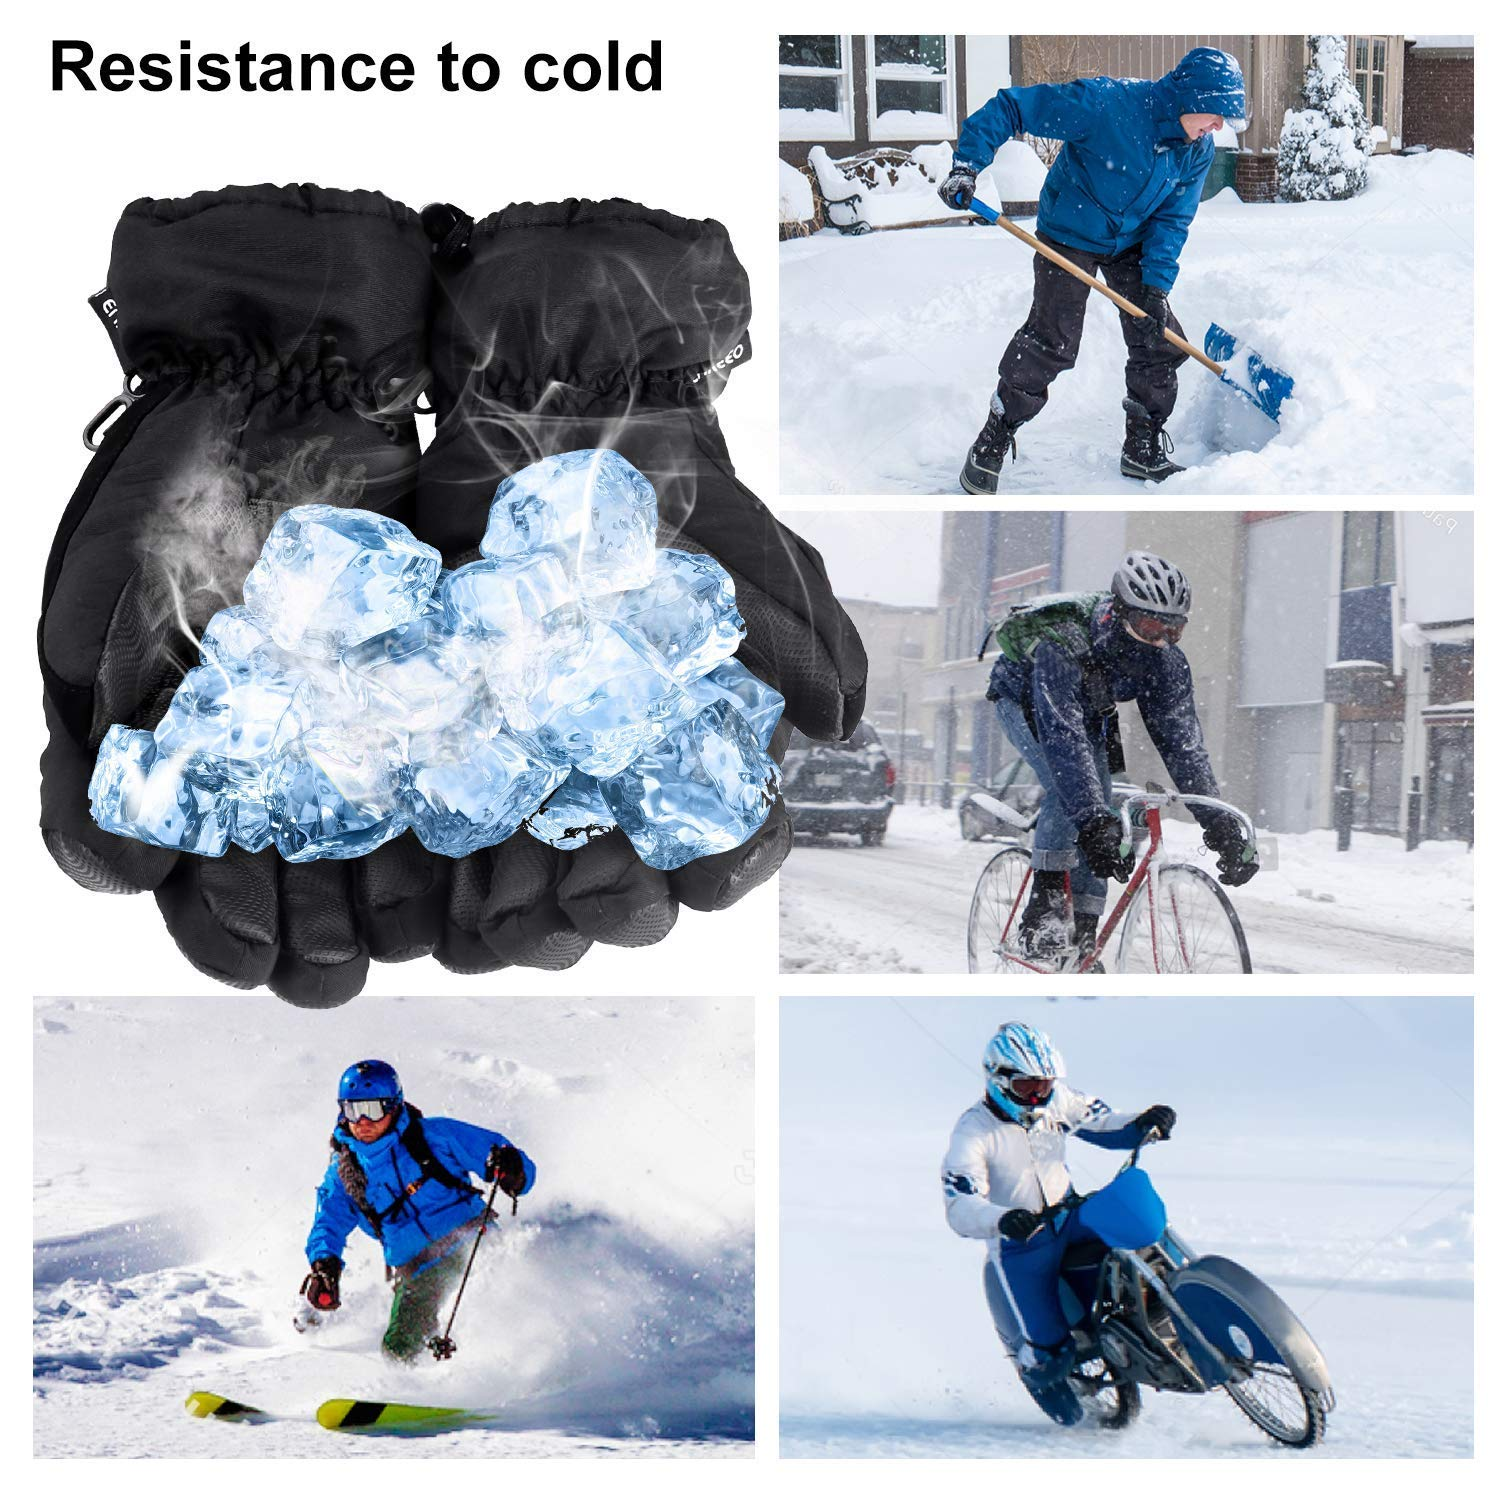 NACATIN Snowboard Gloves,Ski Gloves with Pocket Waterproof for Mens Womens,Thermal Warm Gloves 3M Thinsulate Insulated with Zipper for Winter Snowboard Cycling Snowmobile(Black)